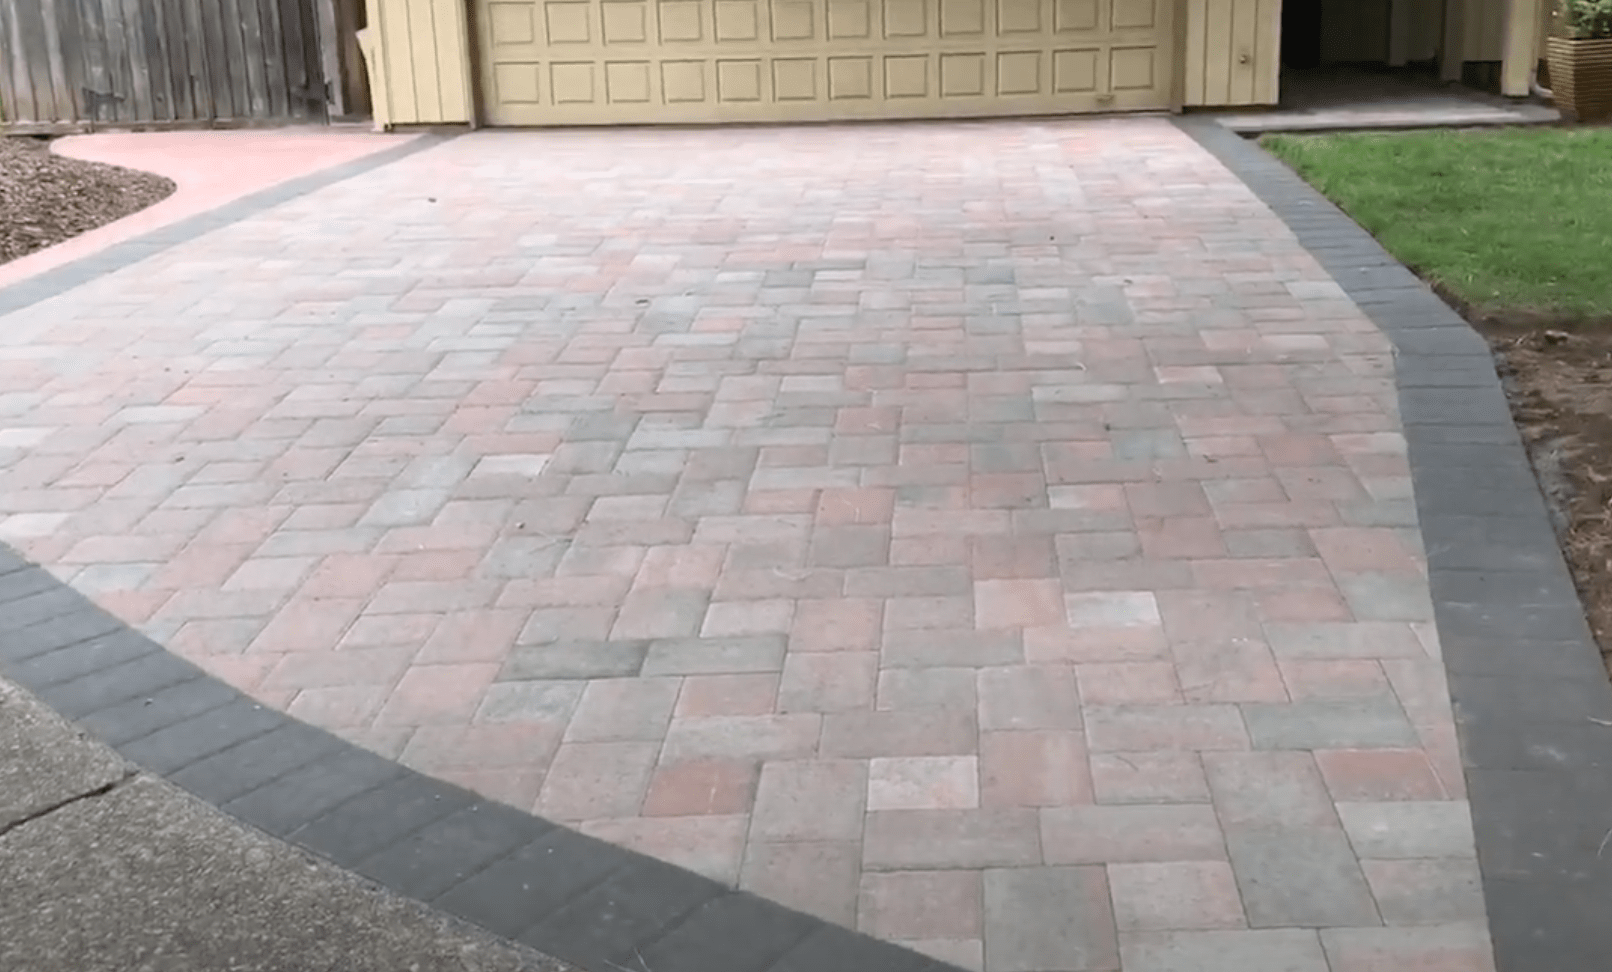 driveway paver project